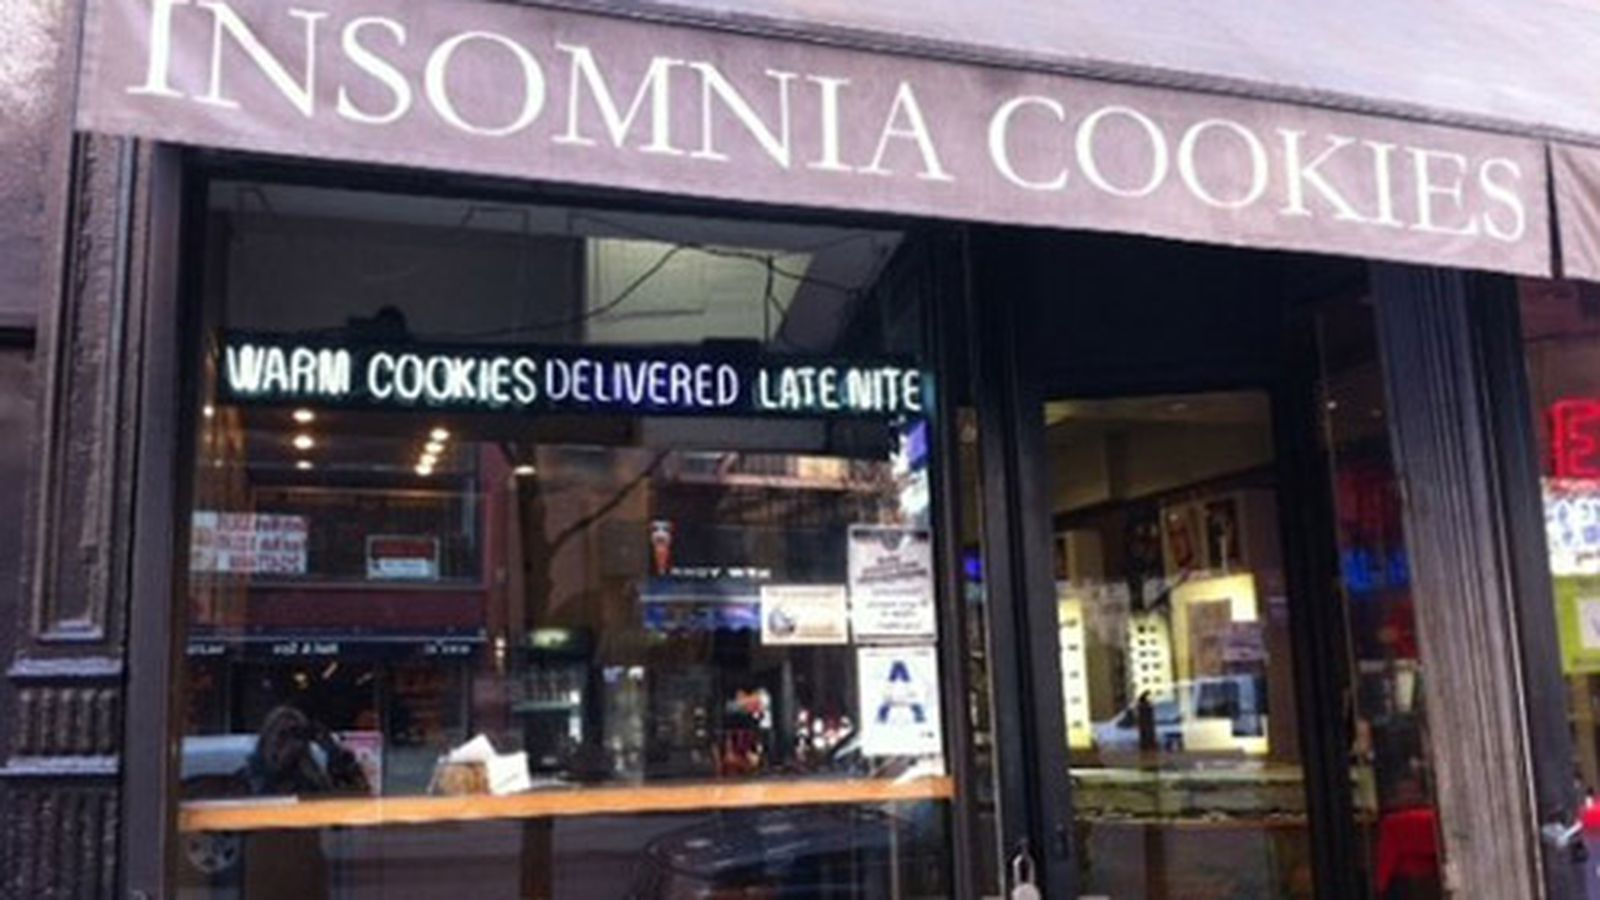 Craigslist Twin Cities >> Insomnia Cookies Is Opening Two Boston Locations - Eater Boston